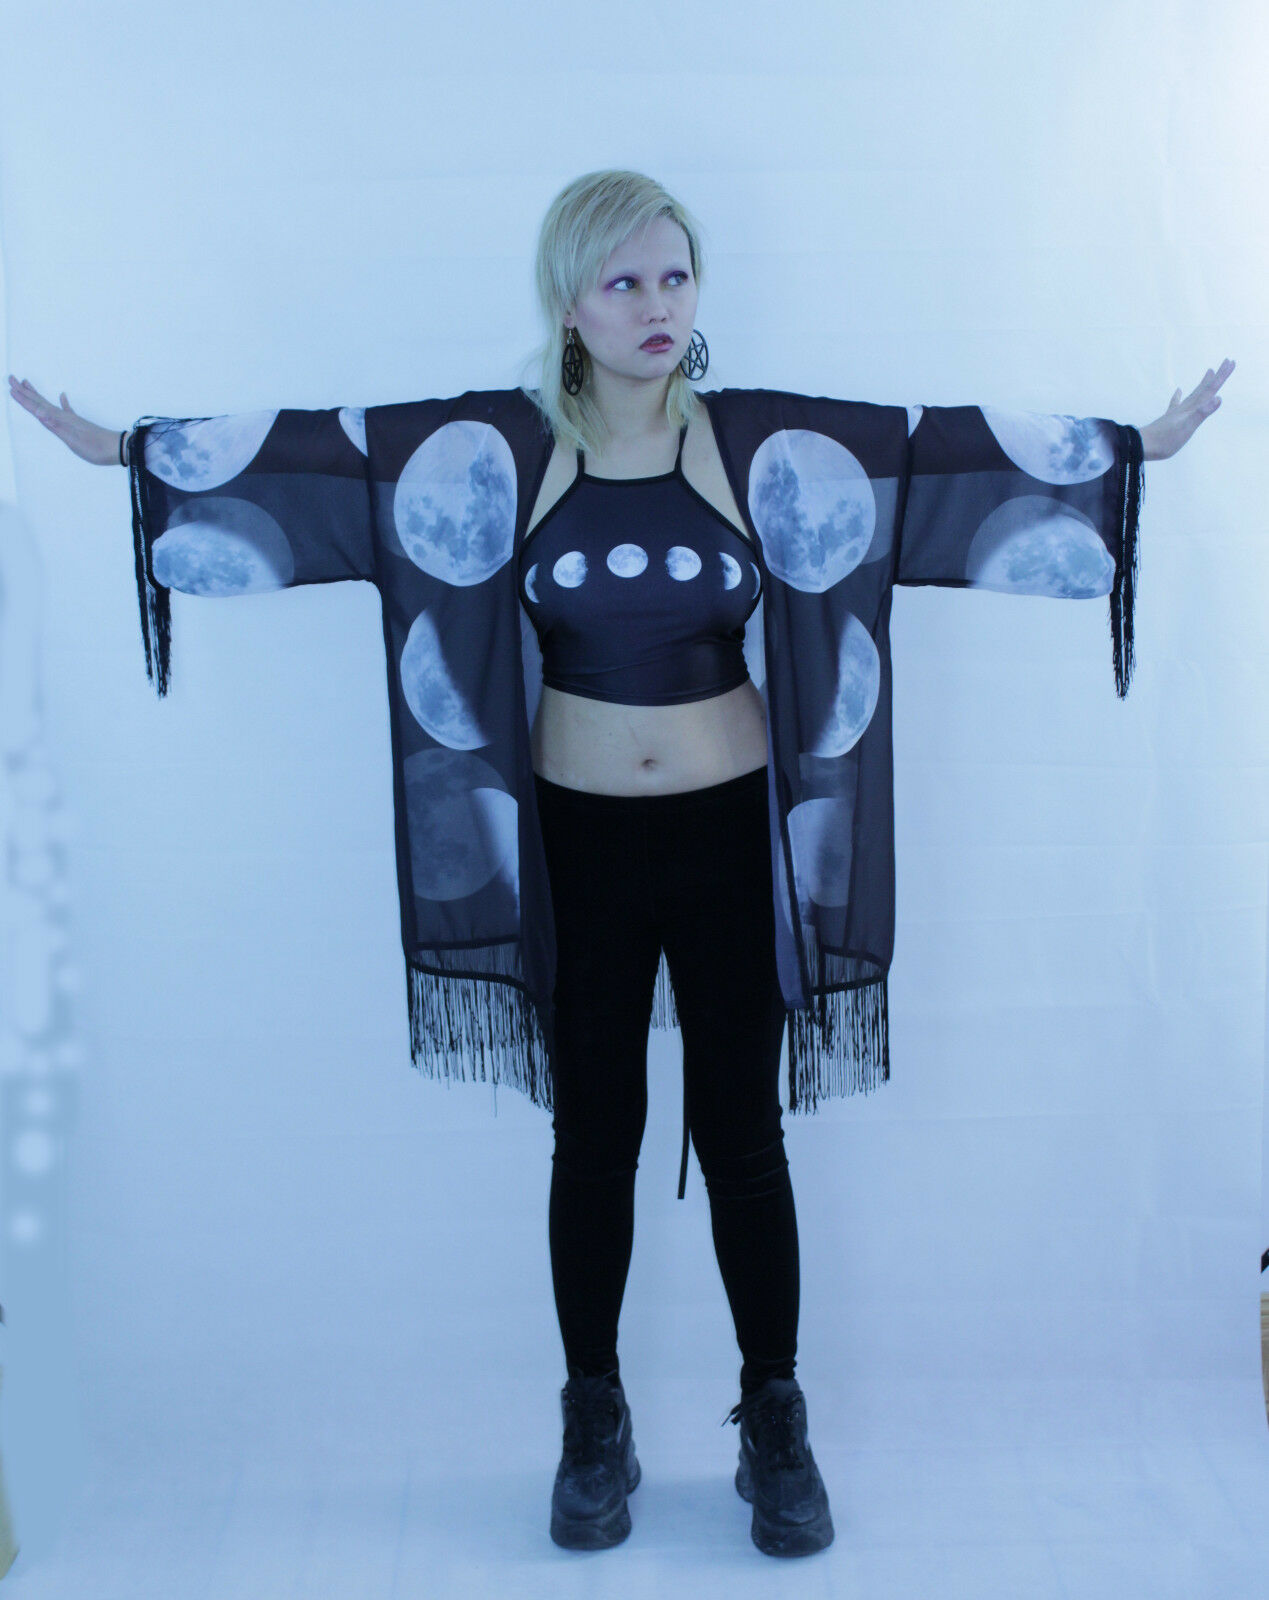 Hexe Gothic Wicca Occult Sommer Pagan Kimono Witch Witchcraft